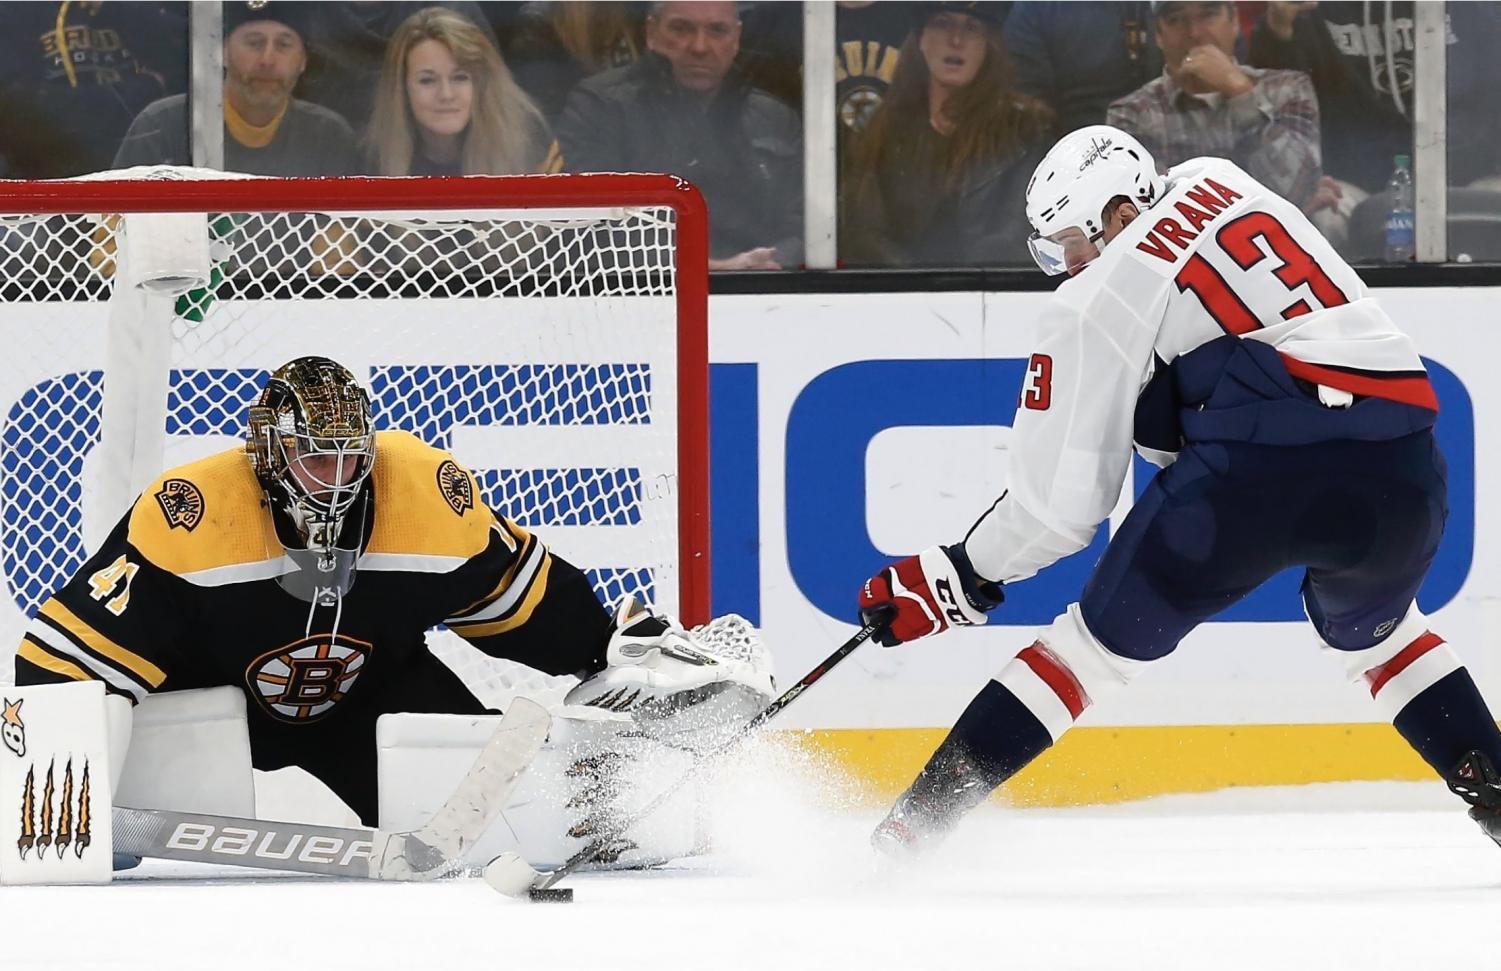 Washington Capitals forward, Jakub Vrana scores beatiful shootout goal to defeat the Boston Bruins on October, 16.